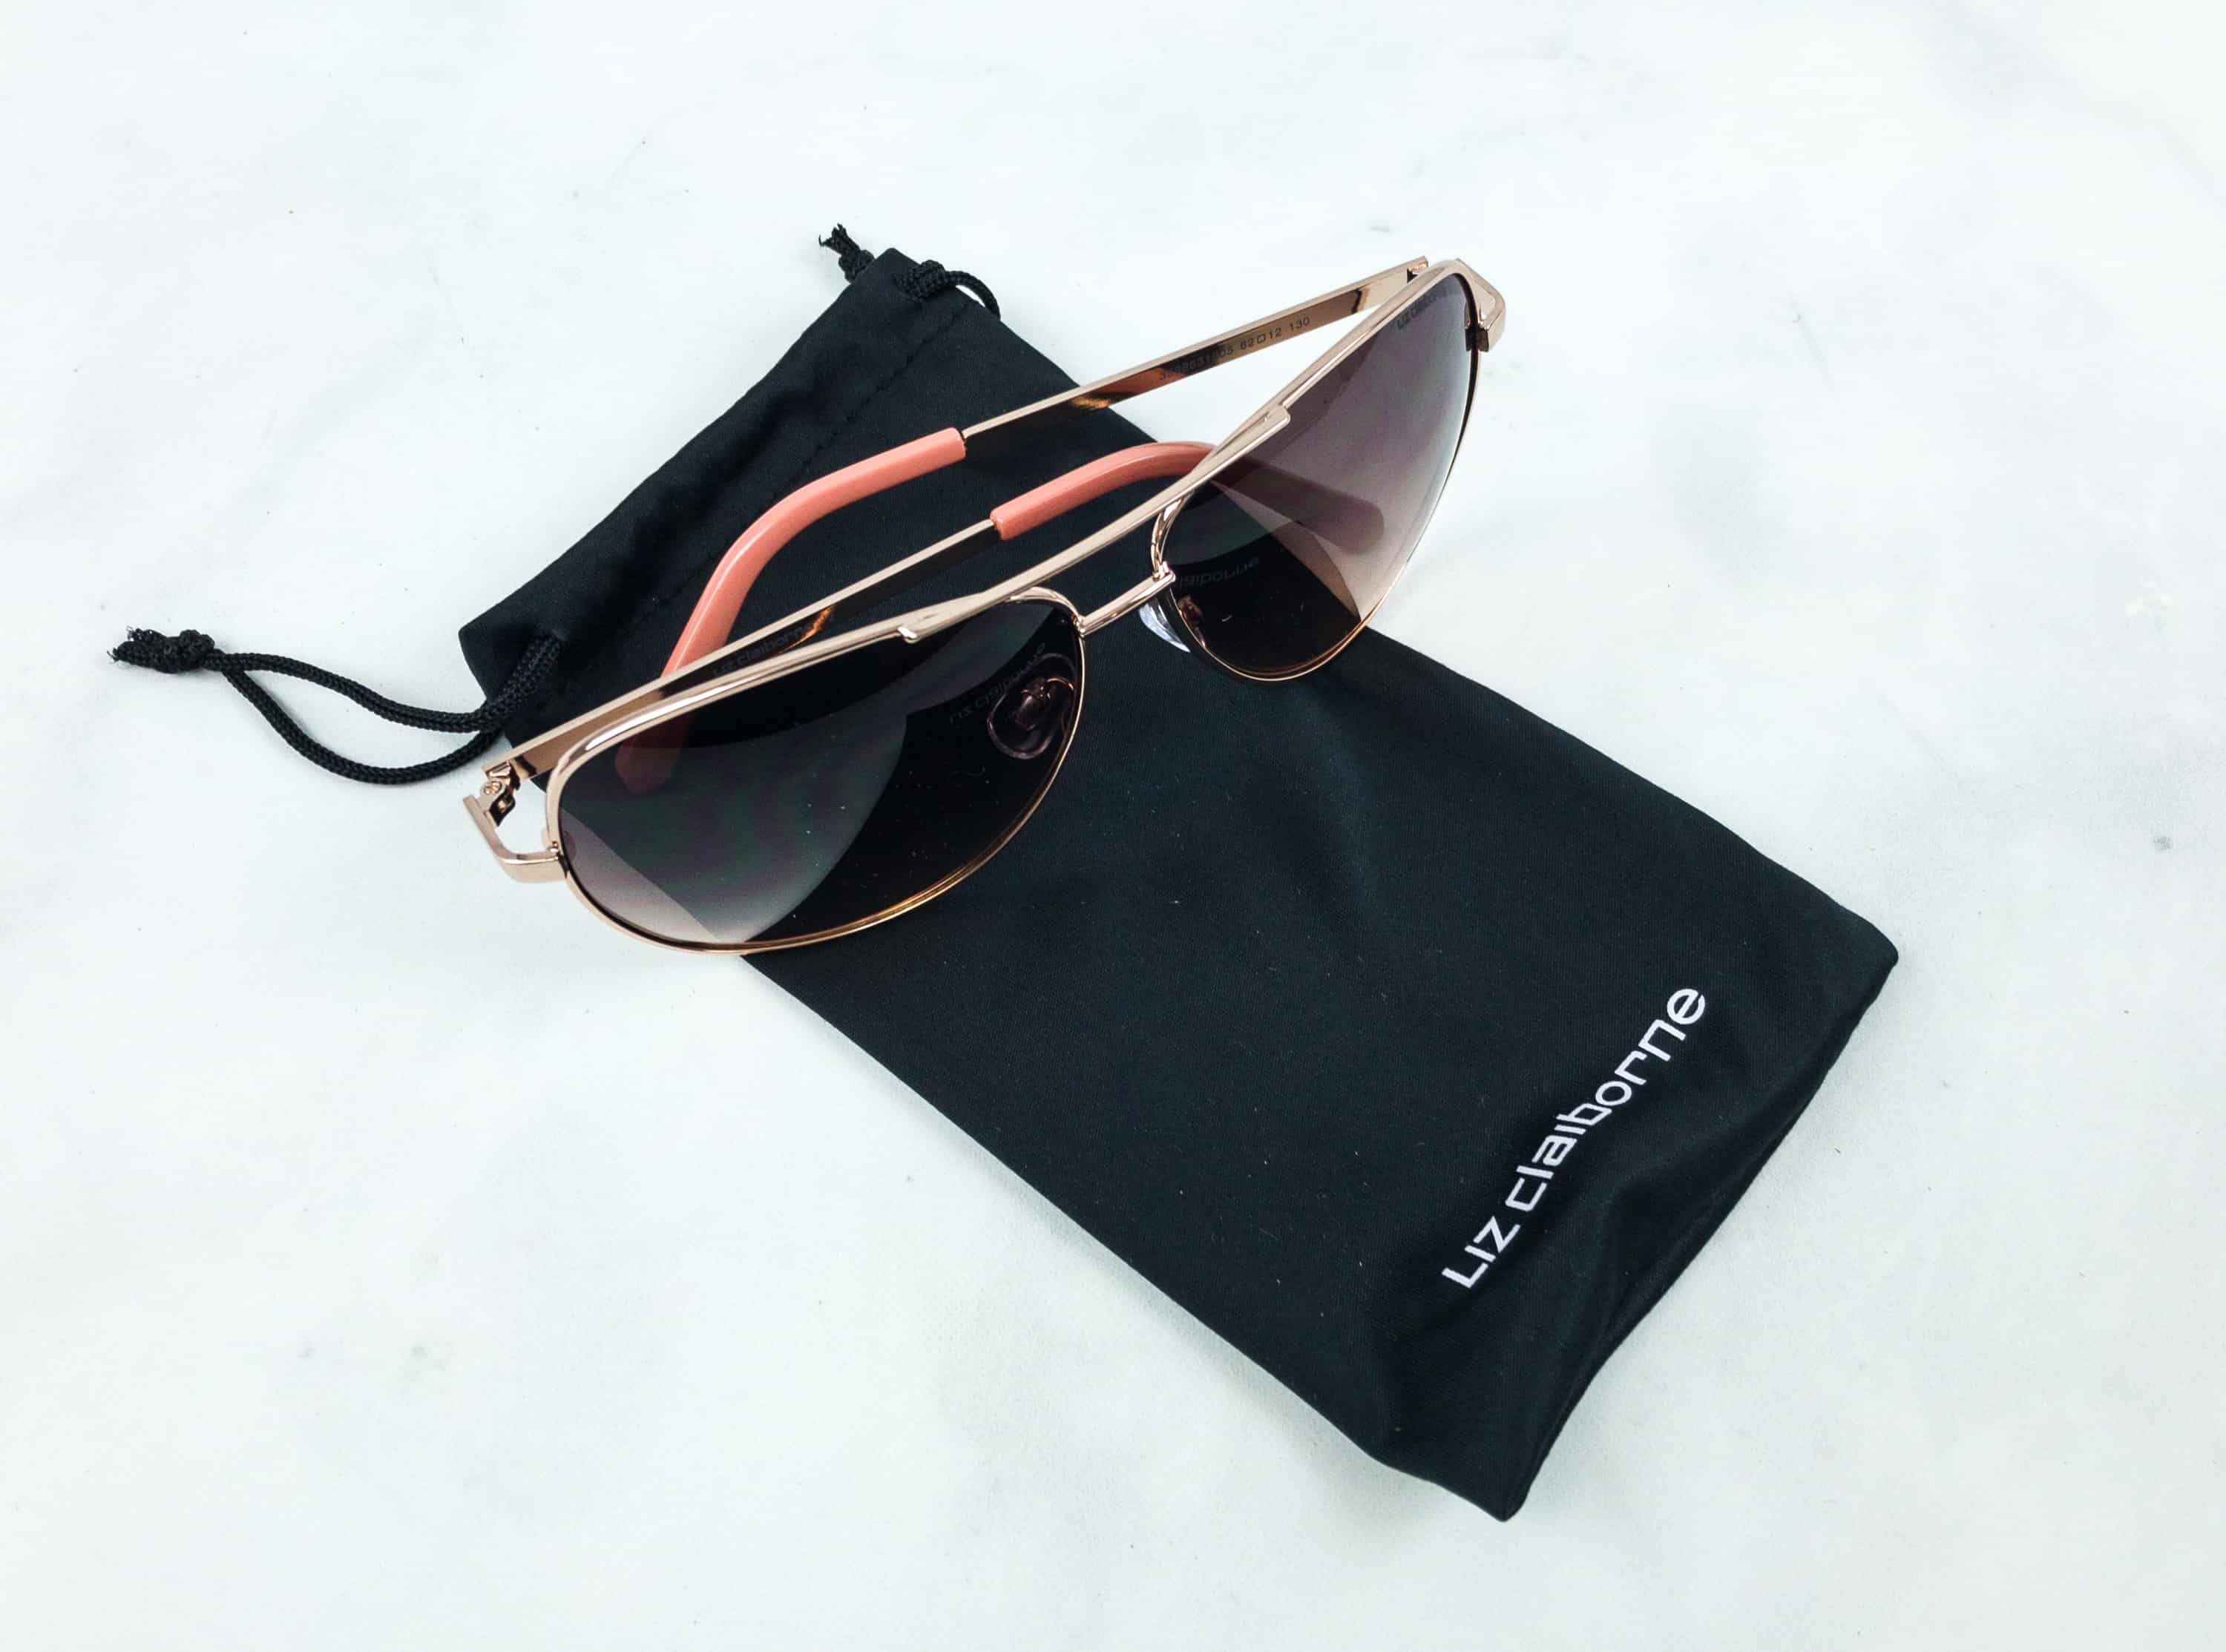 ca4f44cd2d62e Liz Claiborne Sloane Rose Gold Sunglasses ( 22.99) This is my other  favorite item in the box as it is a timeless pair that I can wear through  seasons.